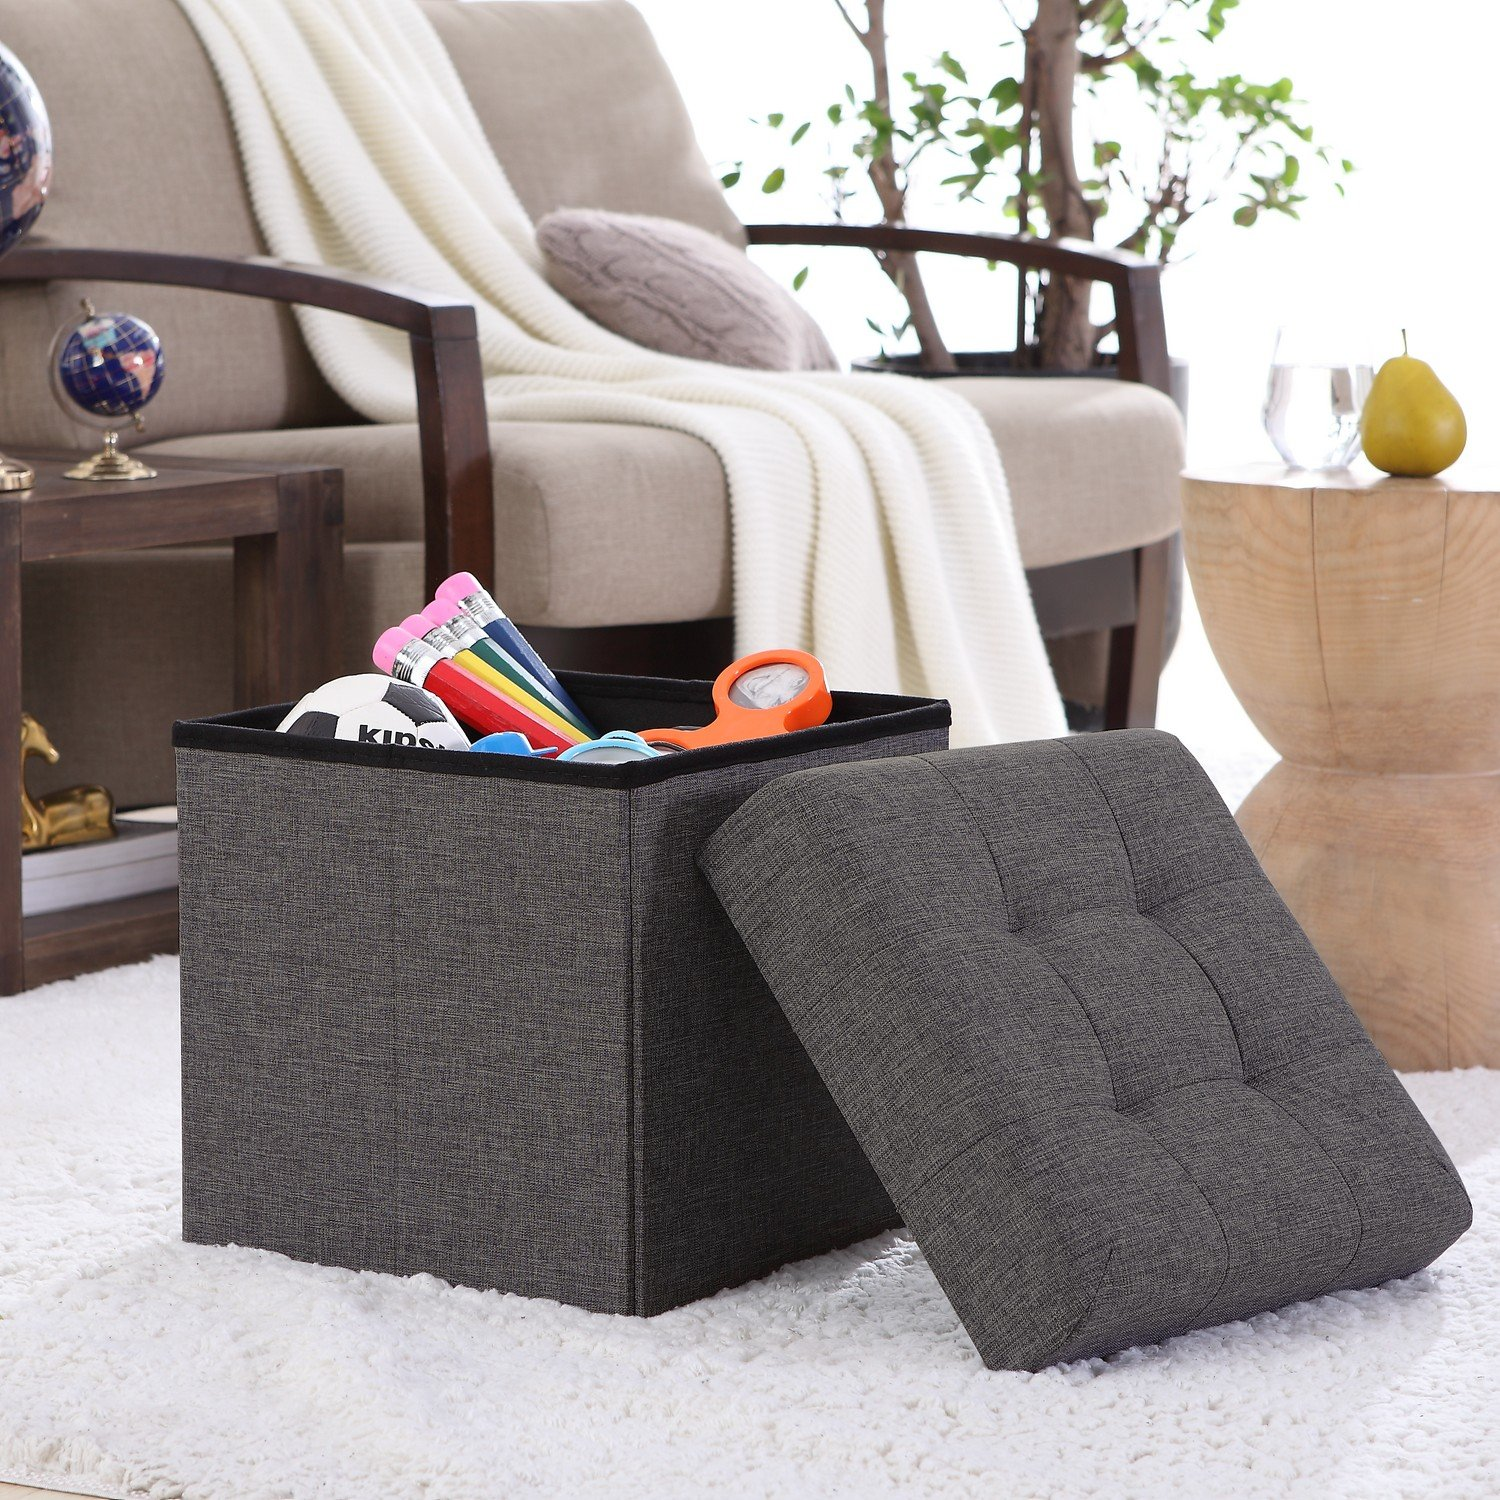 Ellington Home Foldable Tufted Linen Storage Ottoman Cube Foot Rest Stool/Seat Charcoal